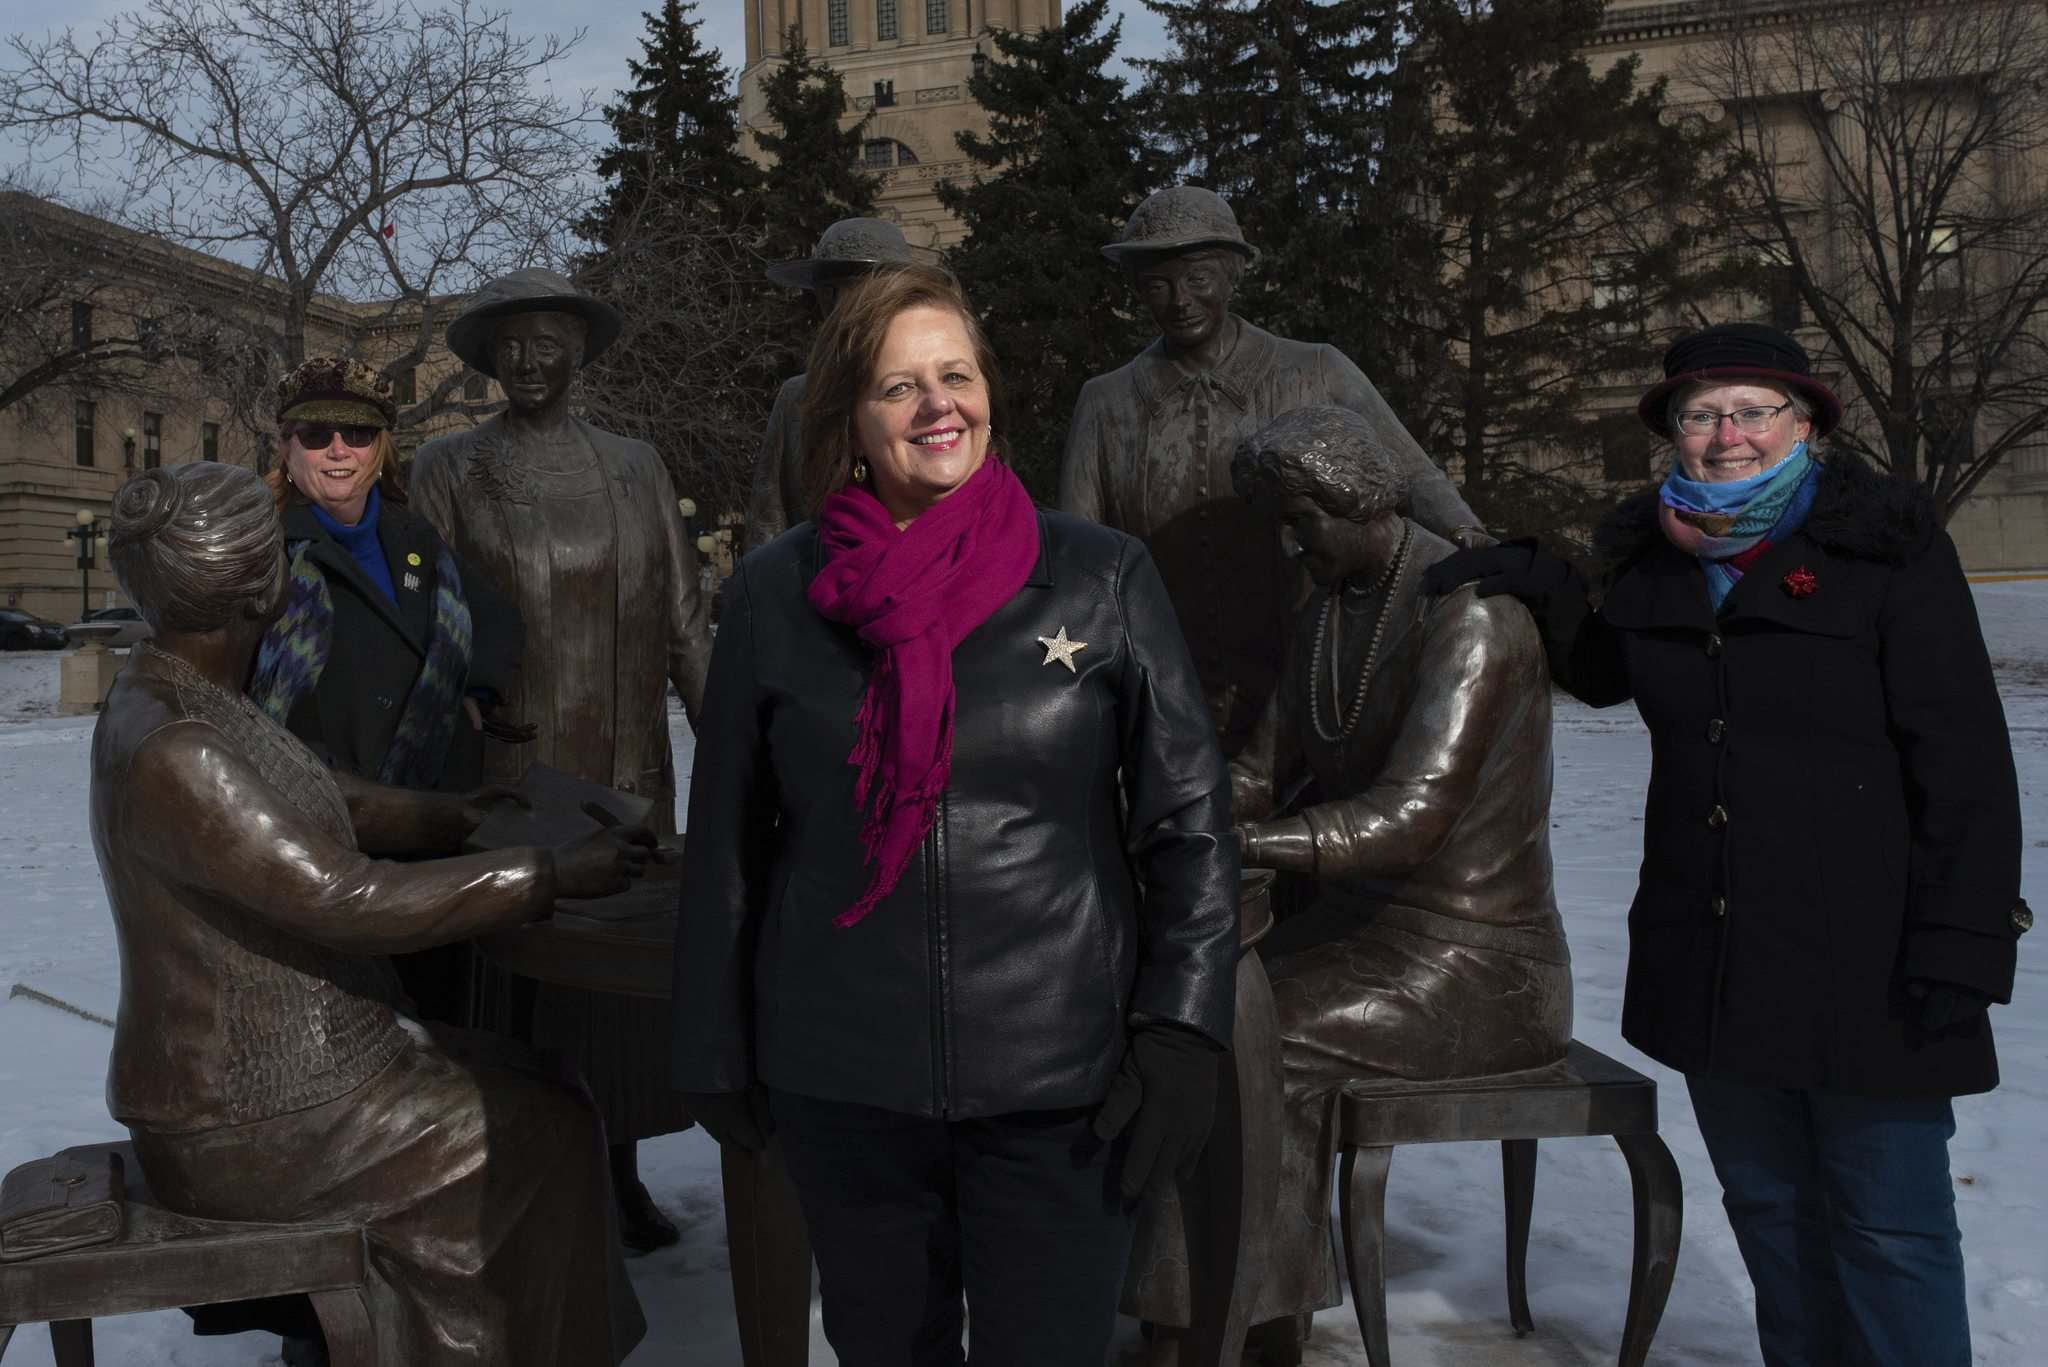 JESSE BOILY / WINNIPEG FREE PRESS</p><p>Members of local sisterhood PEO International Lynette Phyfe (from left) Karen Wiebe and Linda Hamilton, stop for a photo next to the Famous Five Monument.</p>